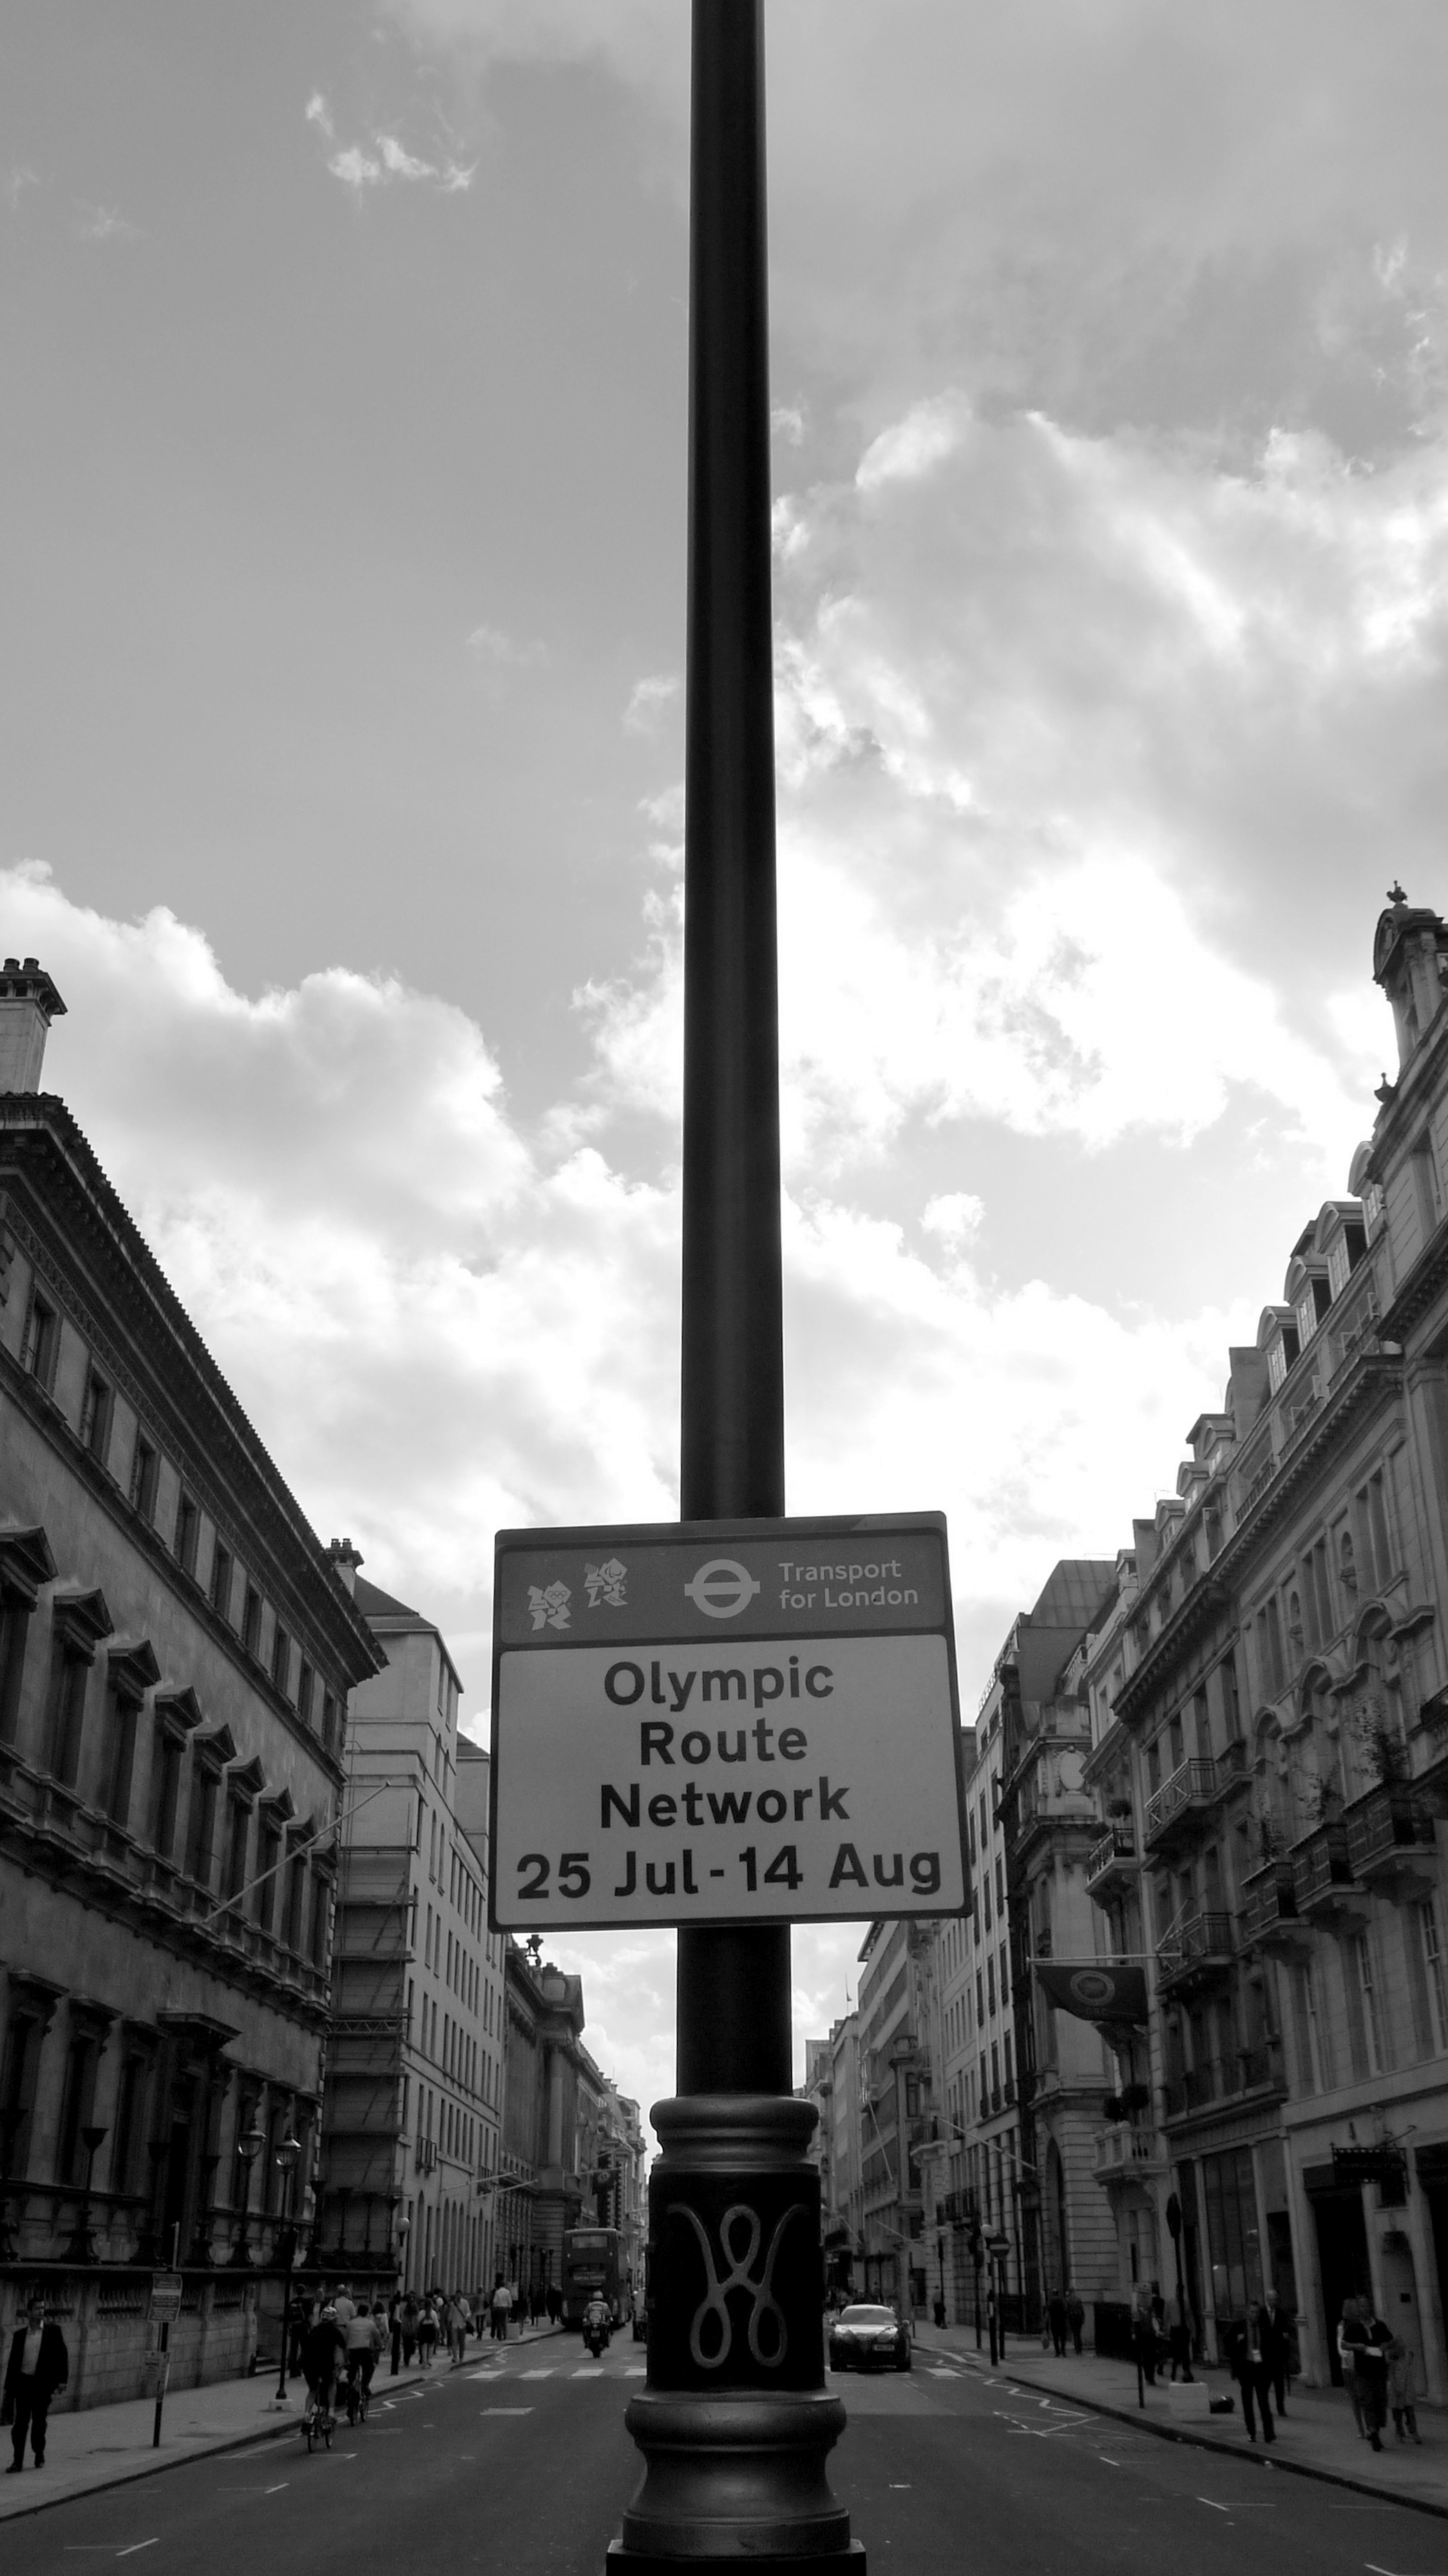 olympics route network. Pall Mall (foto Martina Federico)